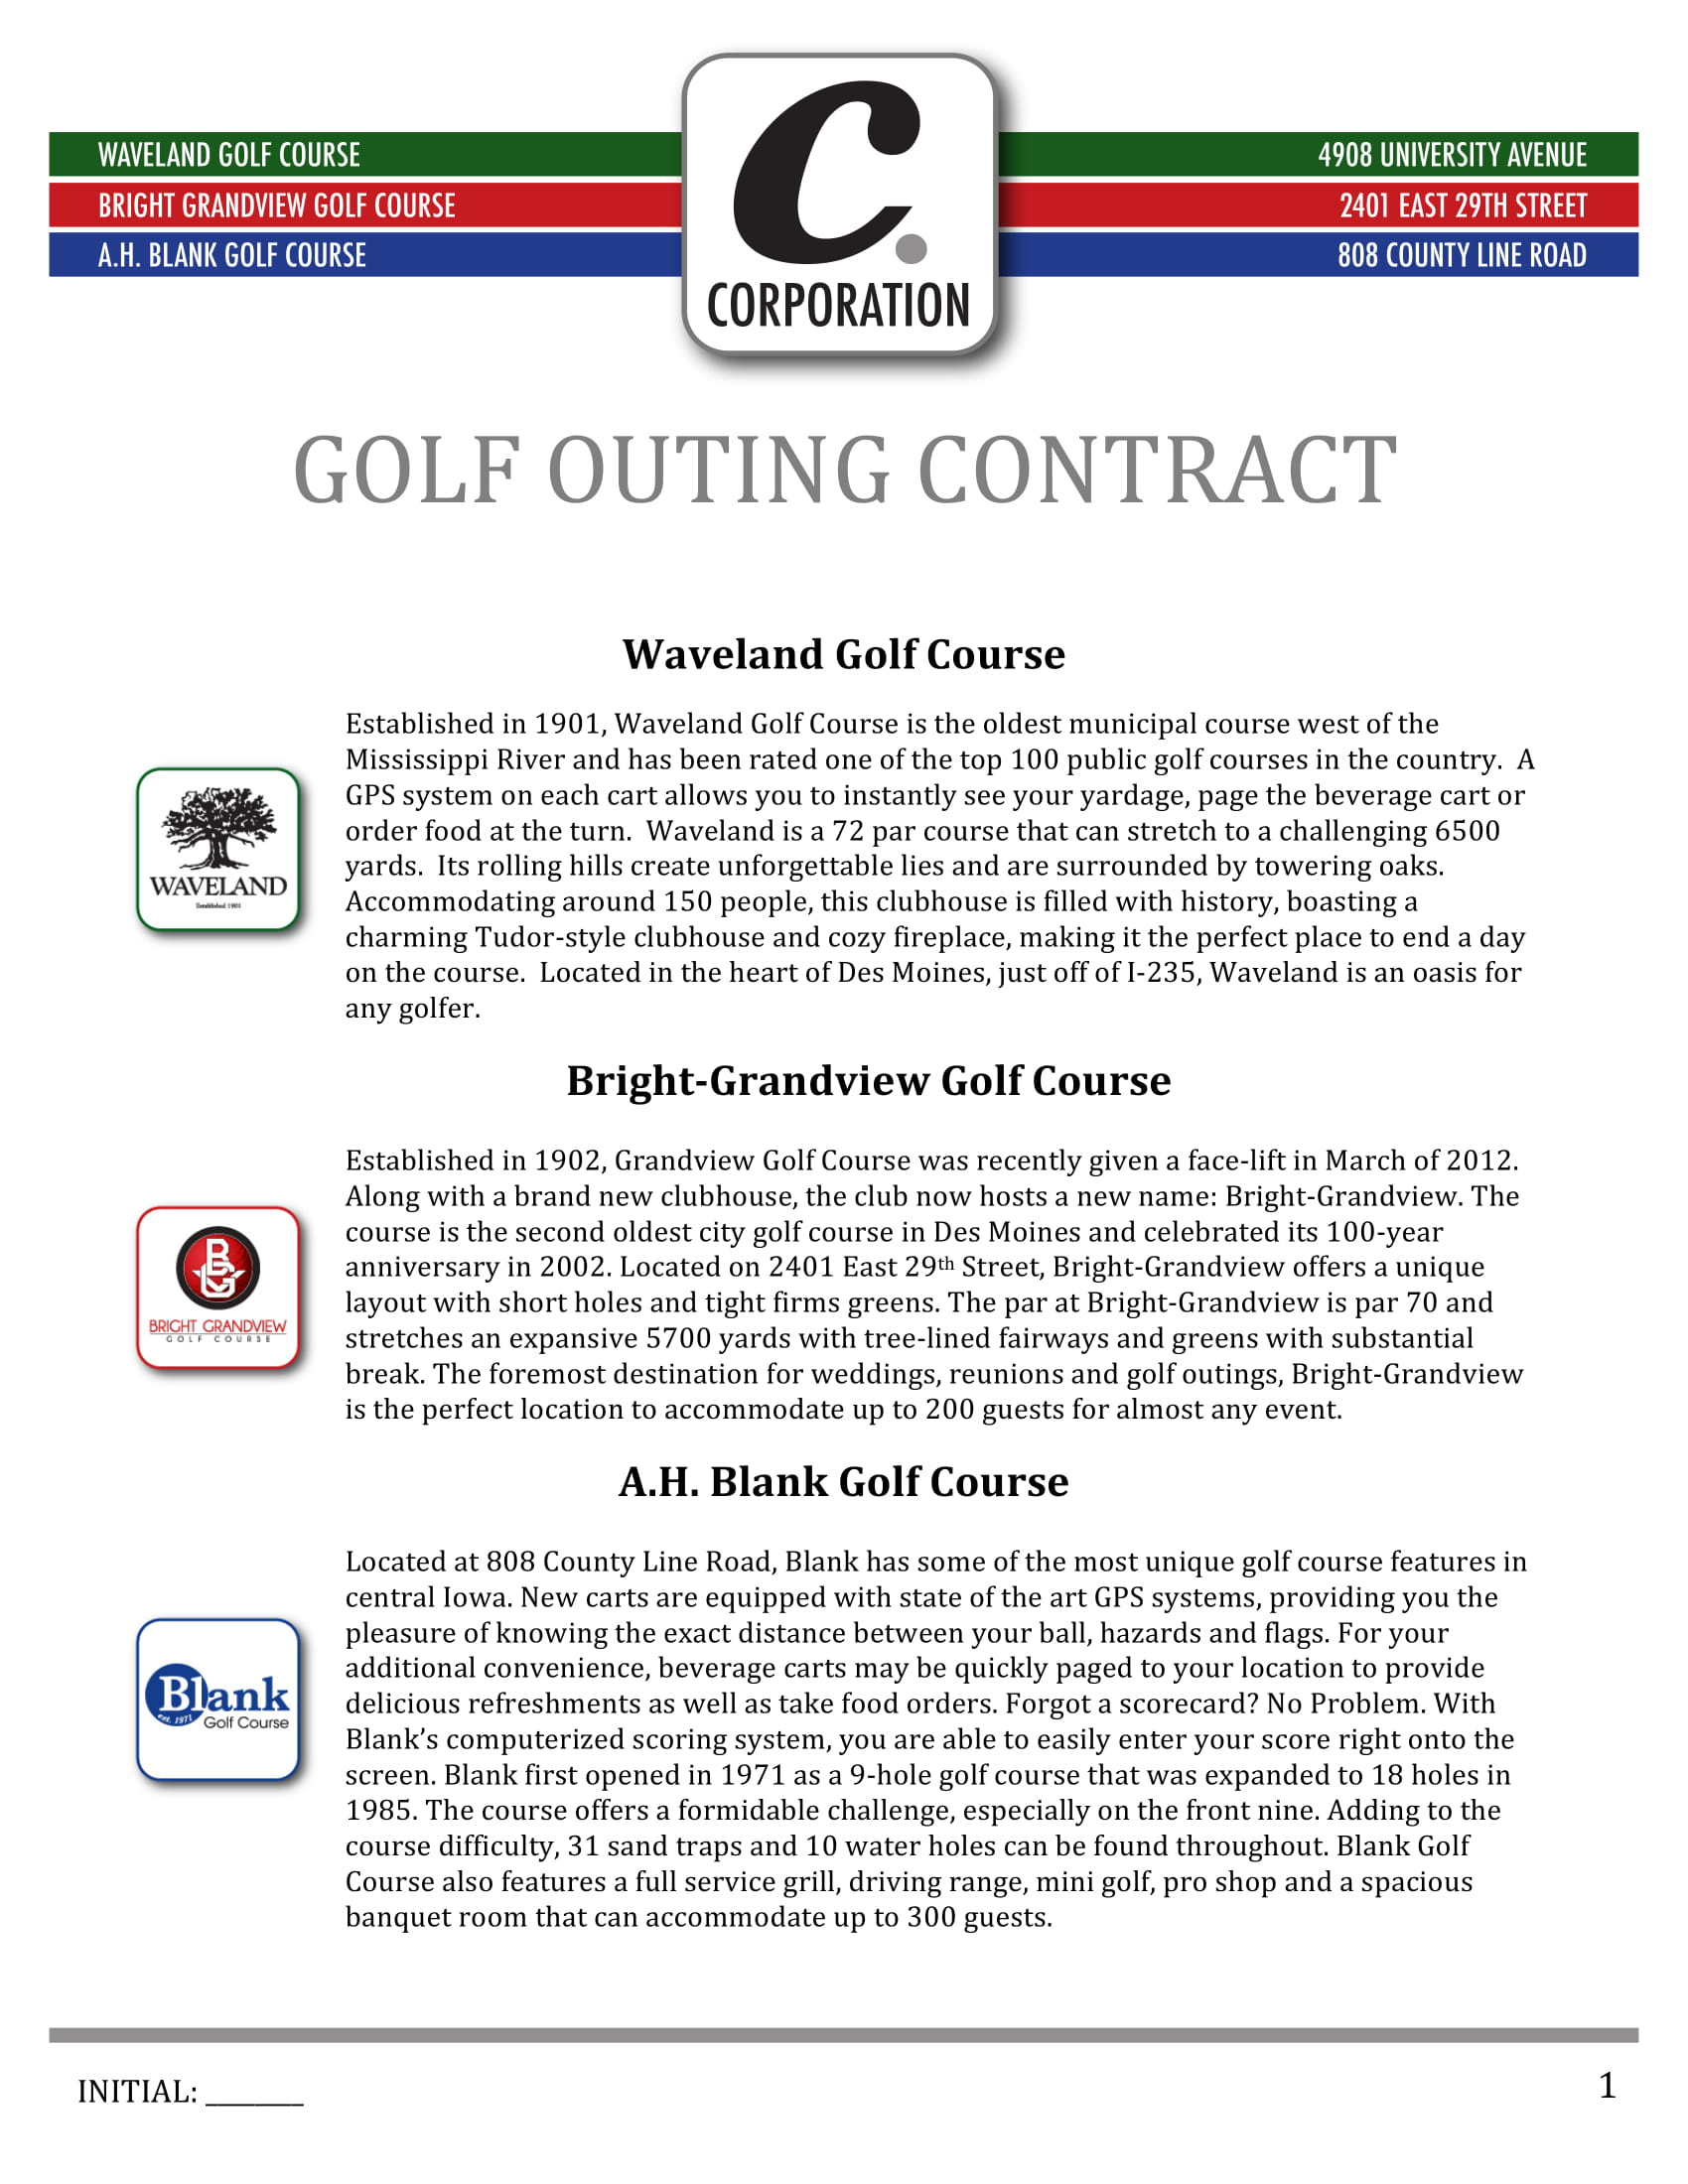 golf outing contract form 1